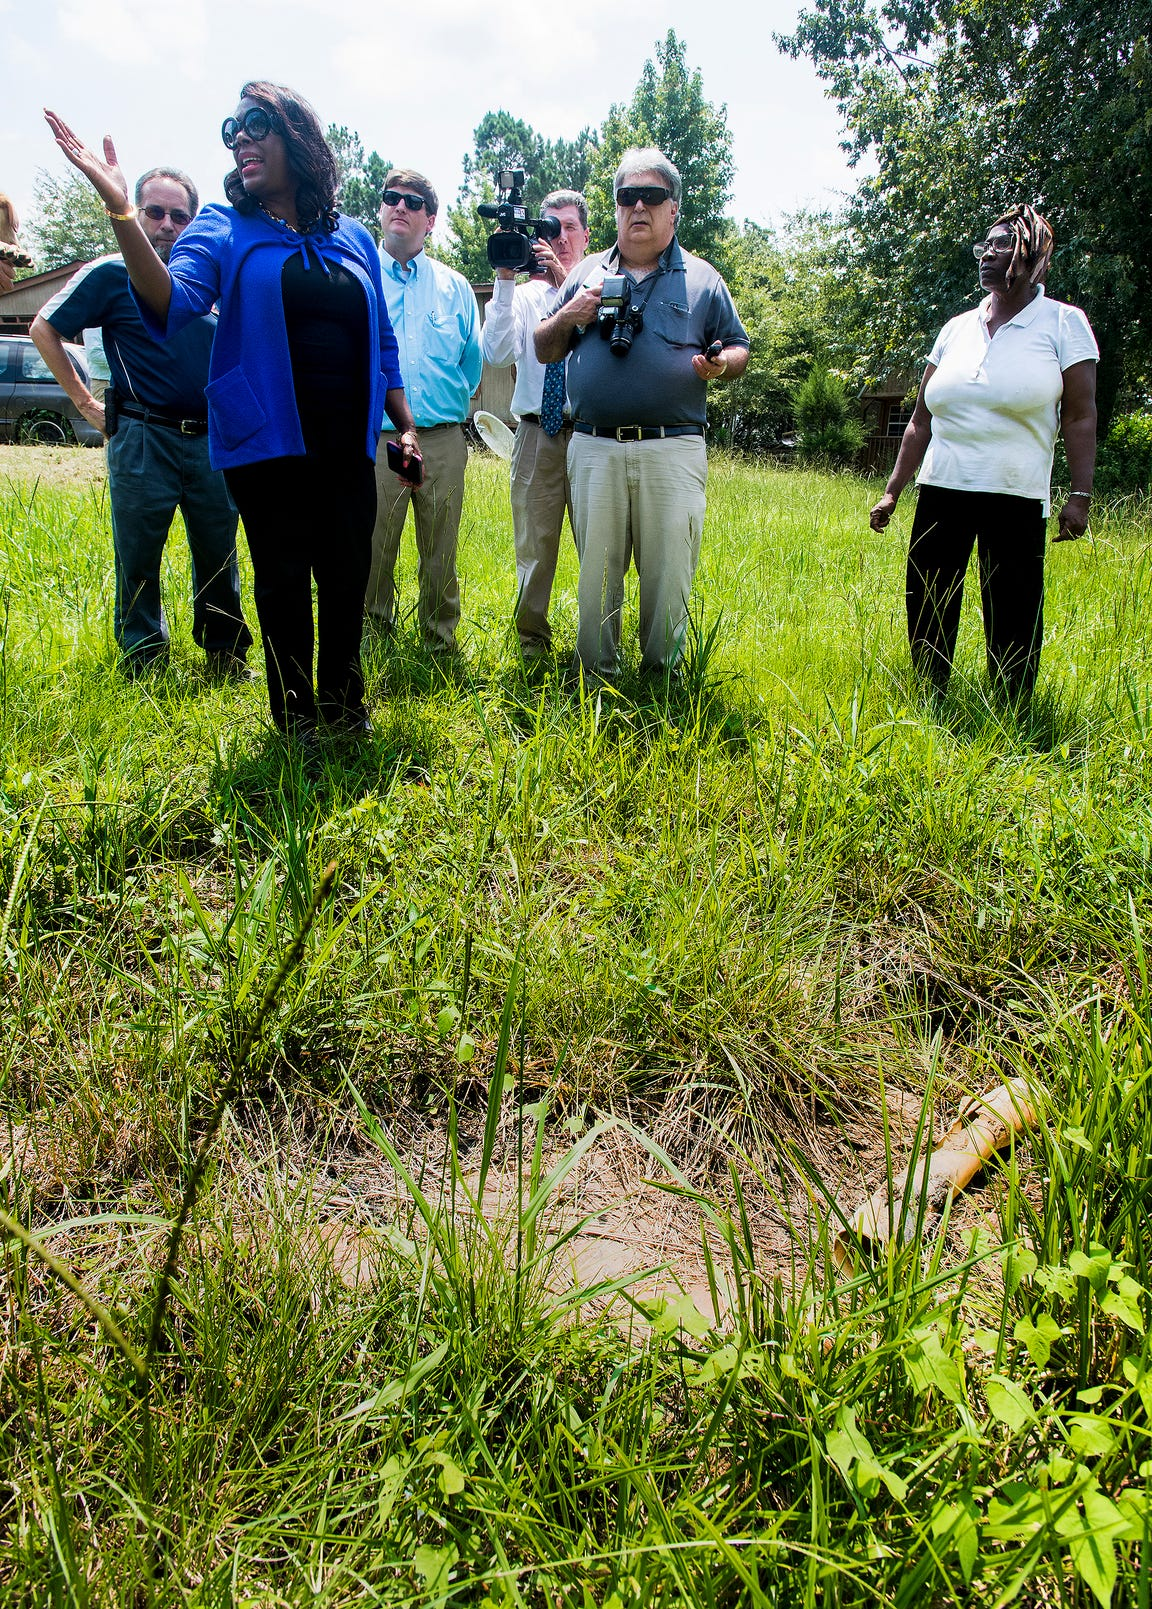 Congresswomen Terri Sewell, left, stands over a failed homemade septic tank in Farmersville, Ala., as she takes a group of engineering and health experts to homes with sewage problems in rural Lowndes County on Monday, July 30, 2018.